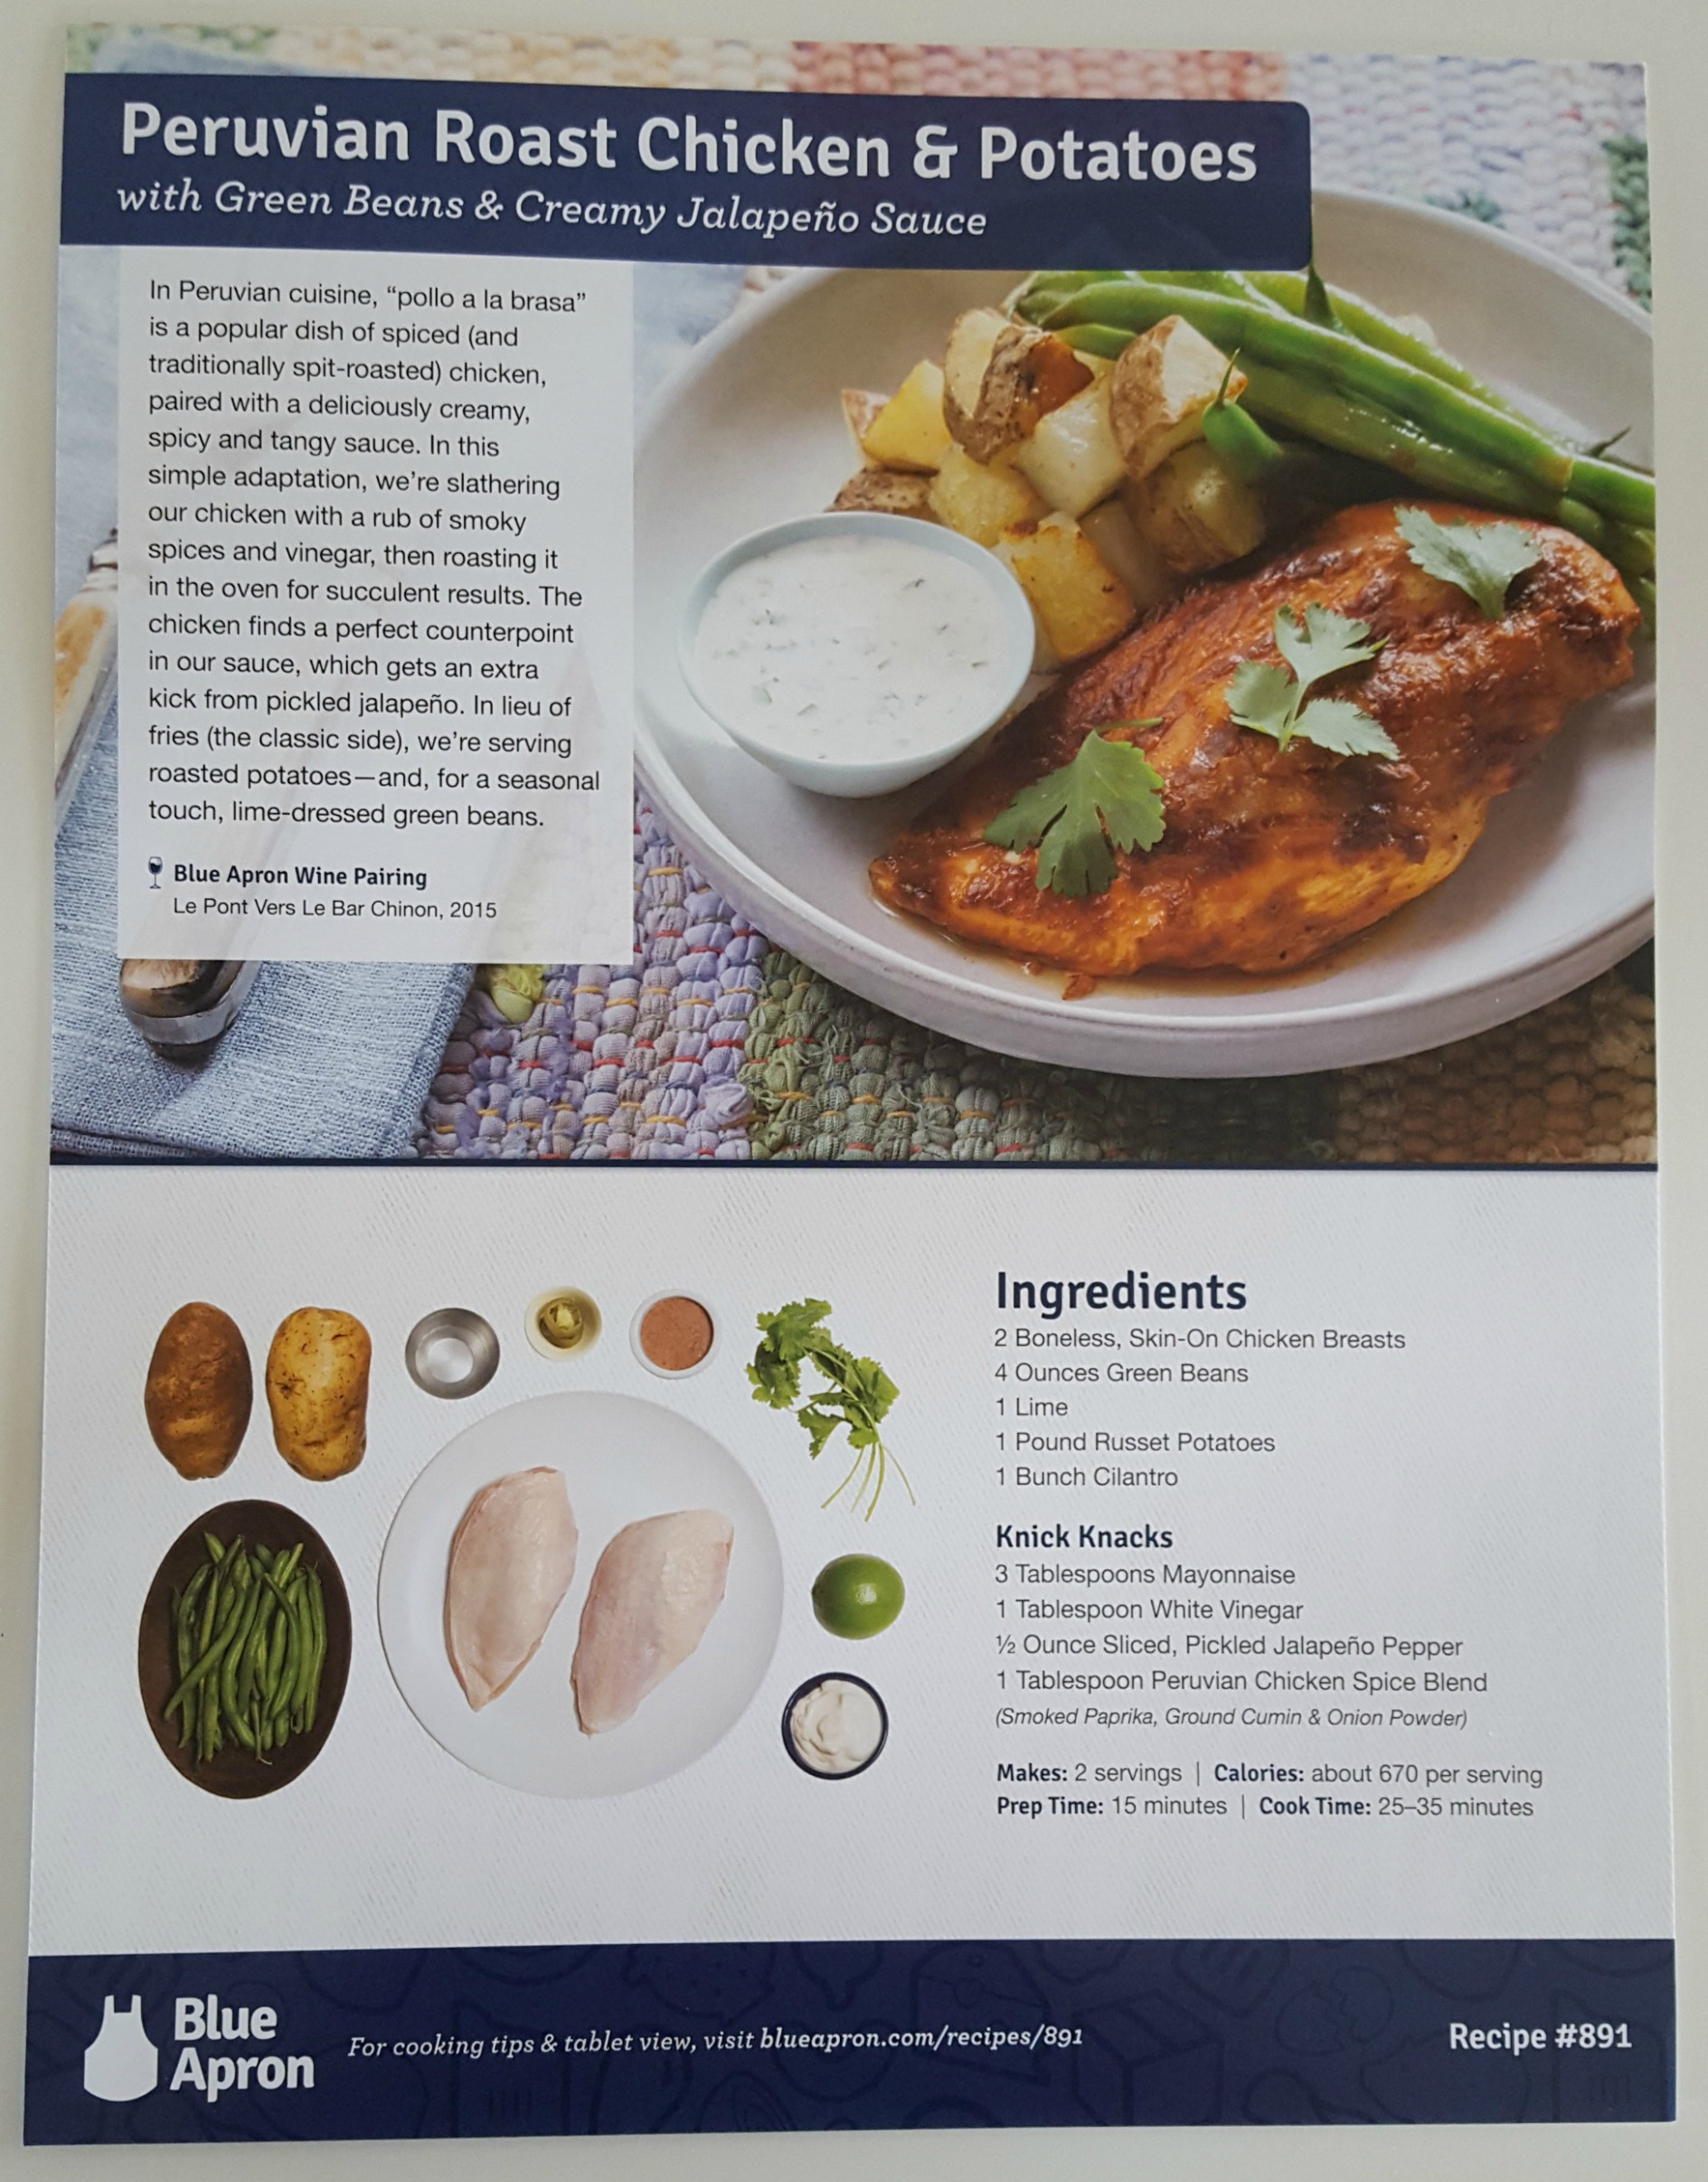 I Tried Blue Apron Food and Recipes: Here's What I Thought ..